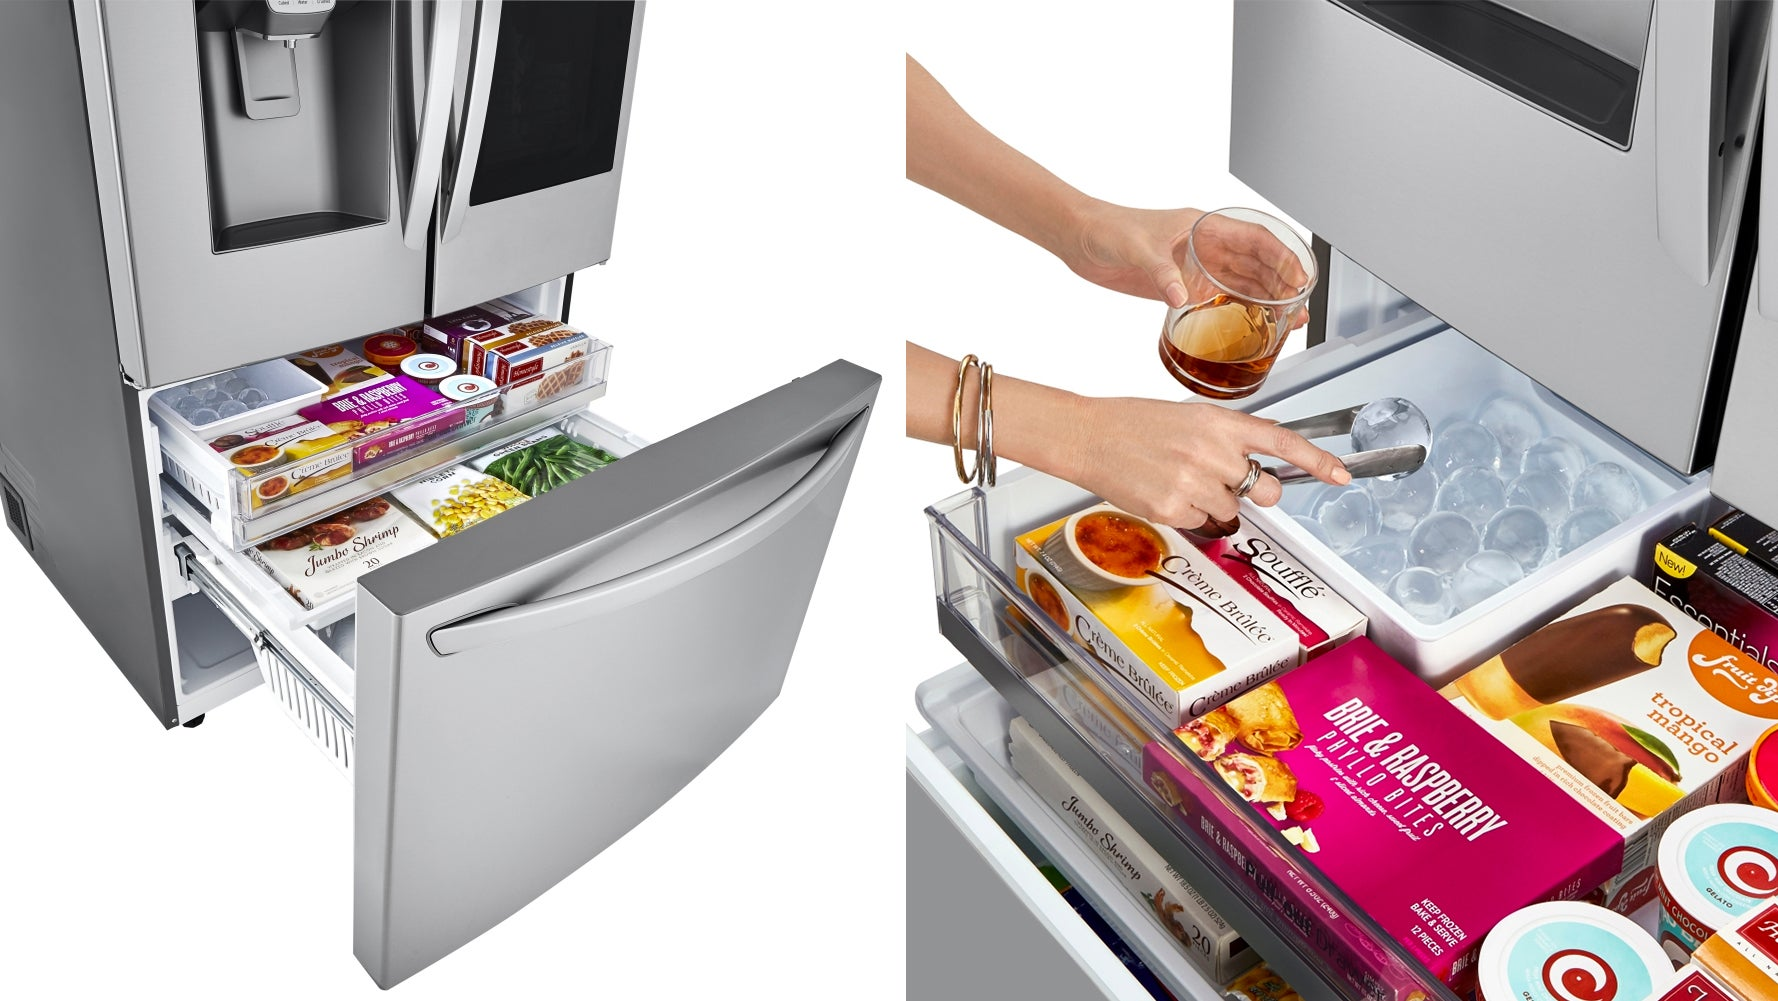 LG Wants You To Replace Your $10 Ice Sphere Tray With A $6000 Fridge